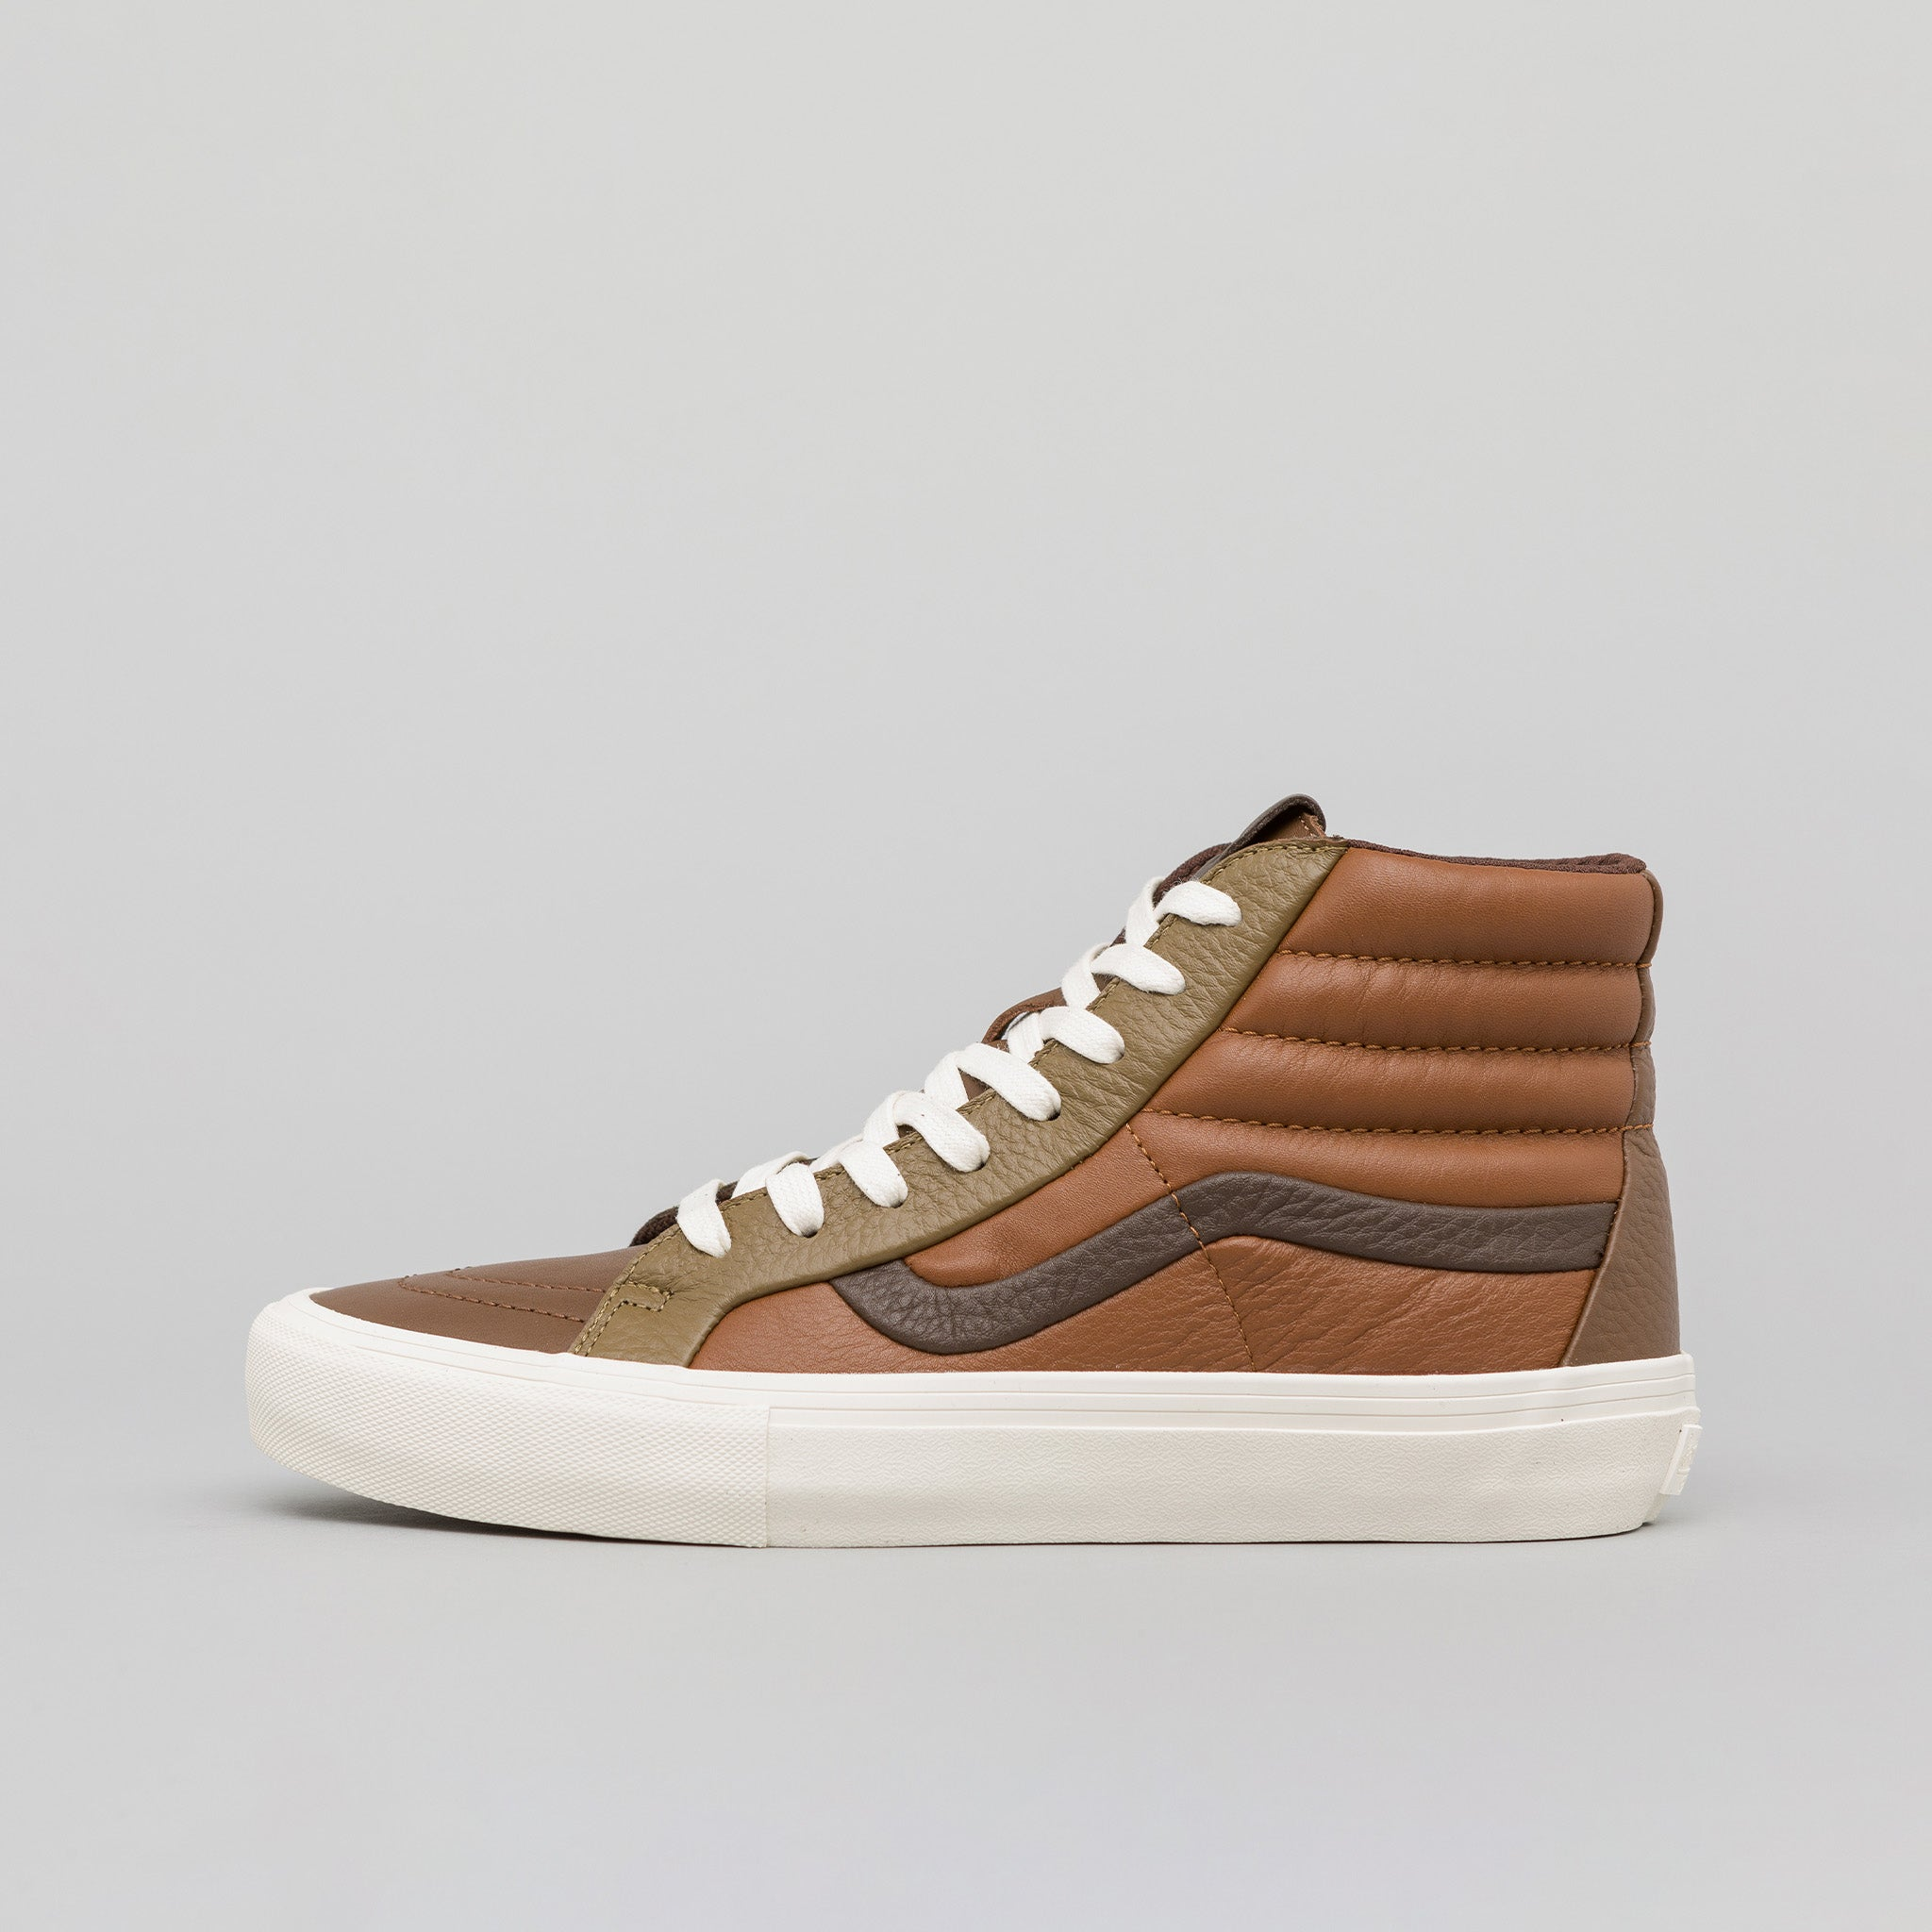 611cca75c2 Vans Vault Sk8-Hi Reissue Premium Leather in Multi Brown